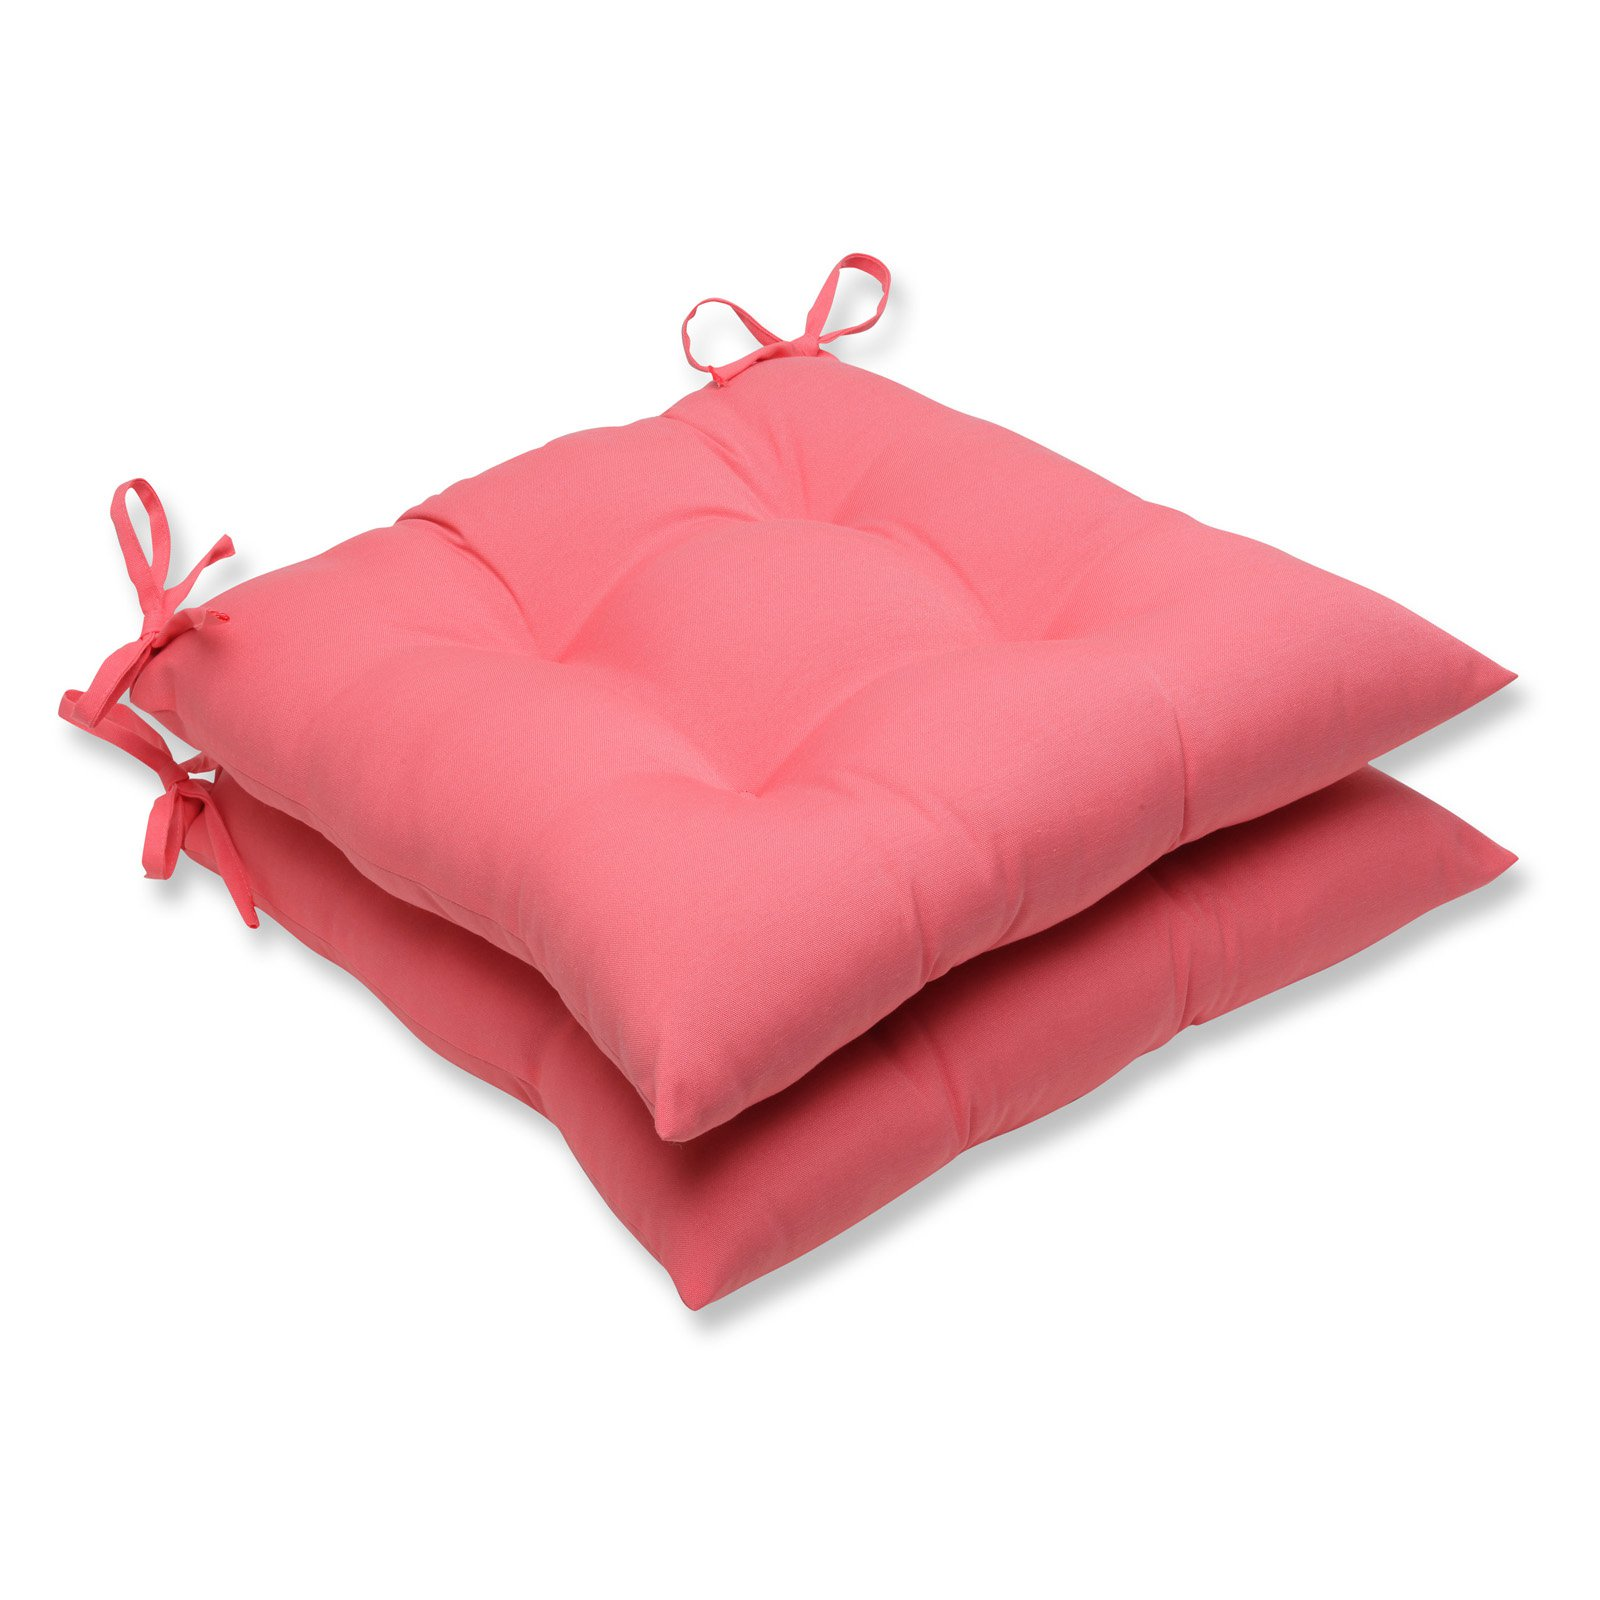 Pillow Perfect Outdoor/ Indoor Fresco Melon Wrought Iron Seat Cushion (Set of 2)